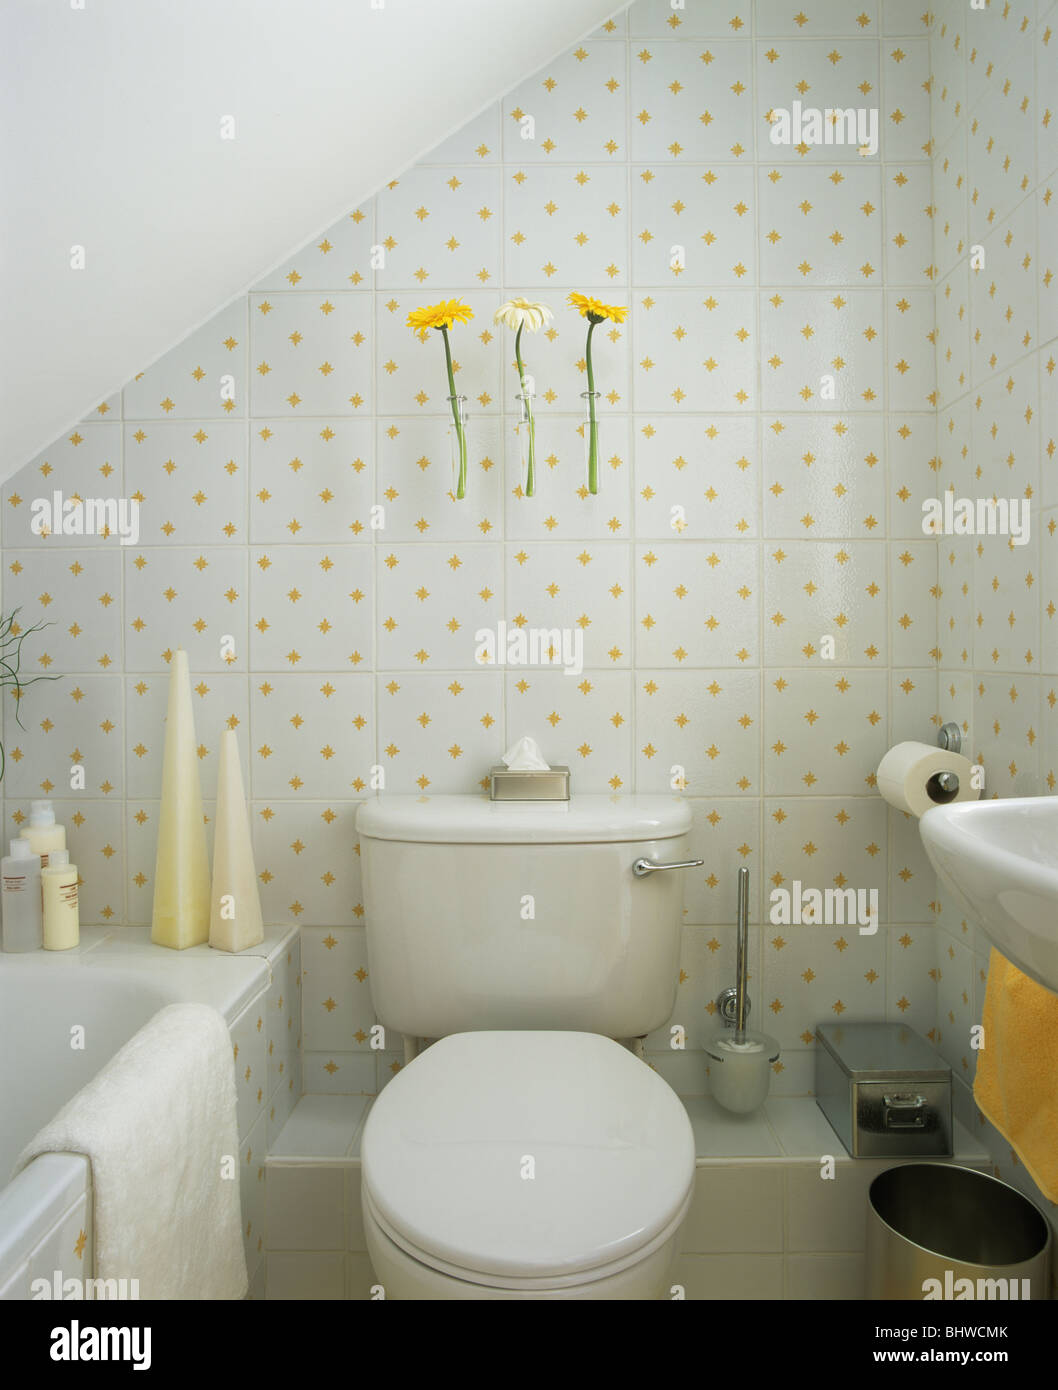 Small economy-style attic bathroom with yellow-patterned white tiles ...